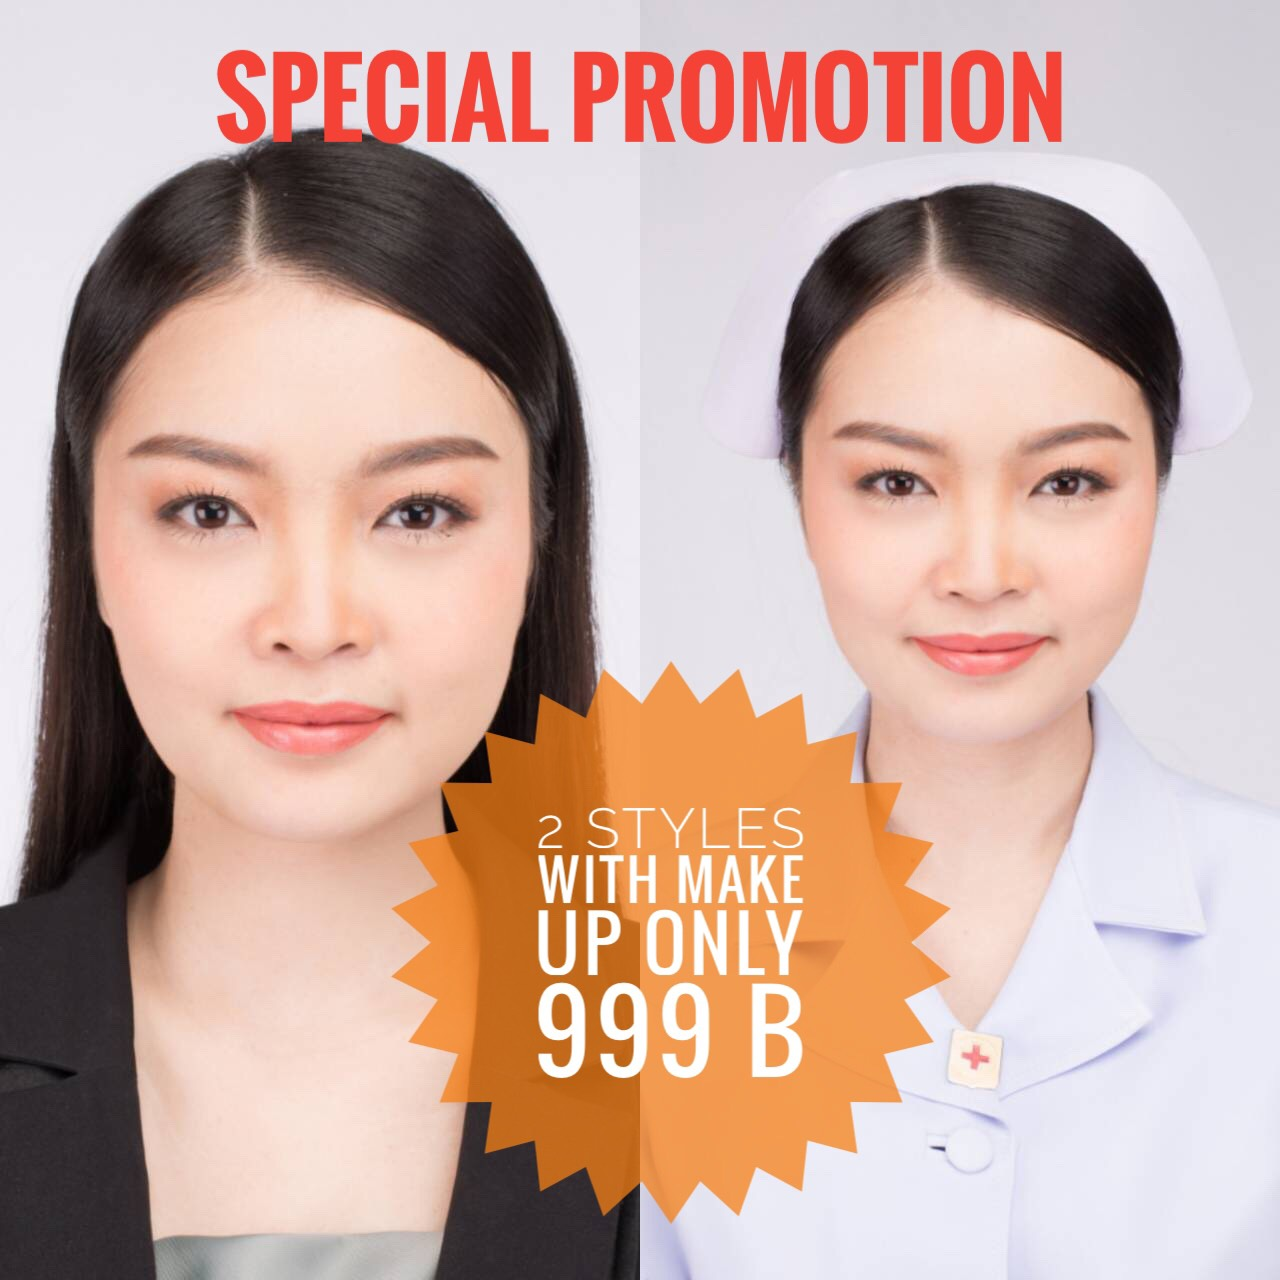 special promotion 2 styles with make up only 999B